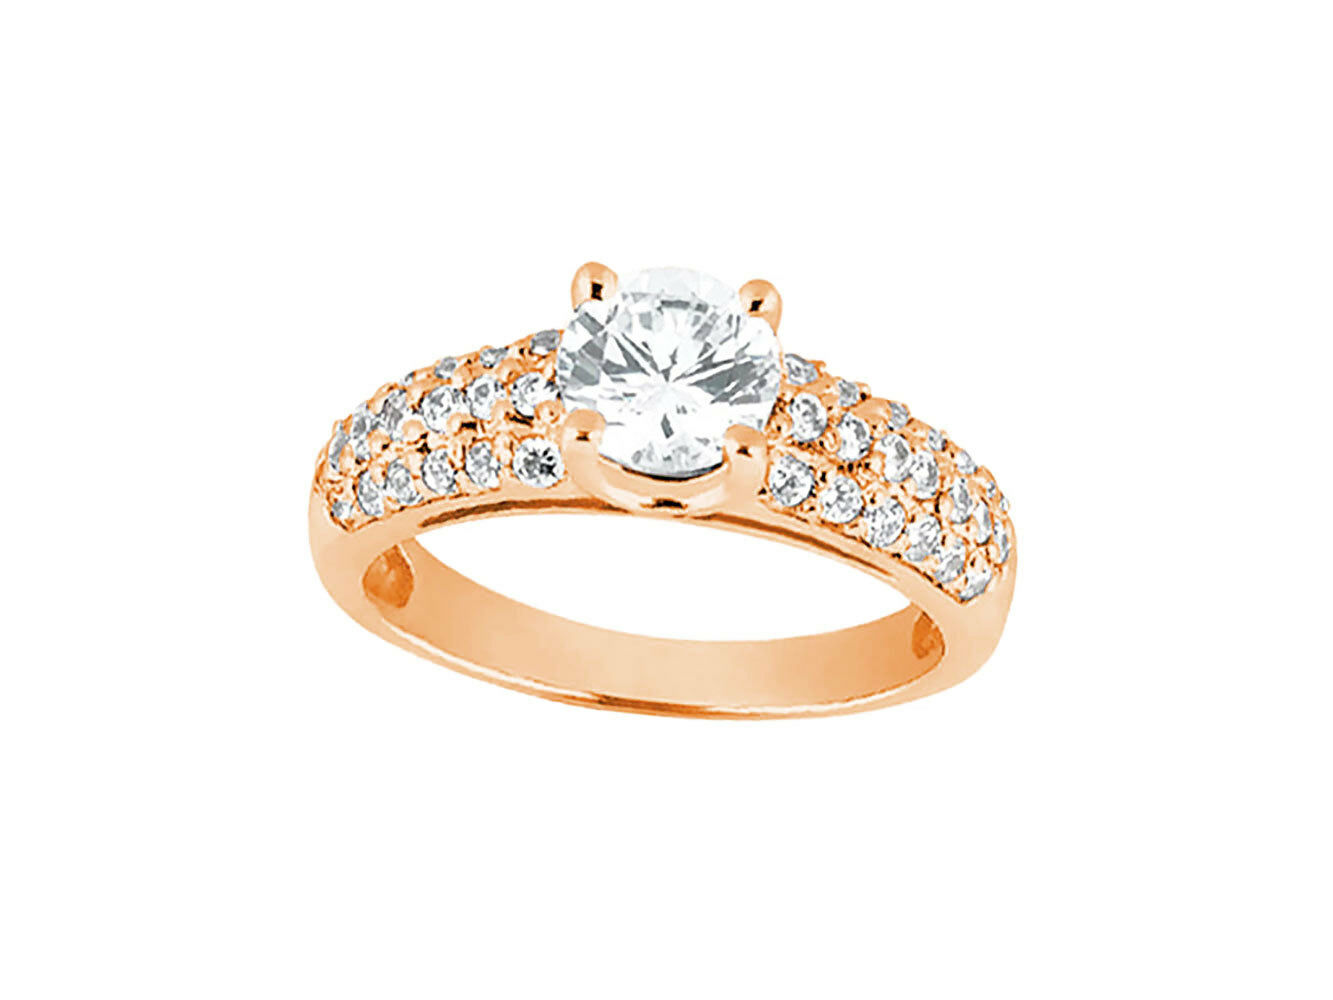 Natural 1.00ct Round Cut Diamond Pave Bridal Engagement Ring Solid 10k gold